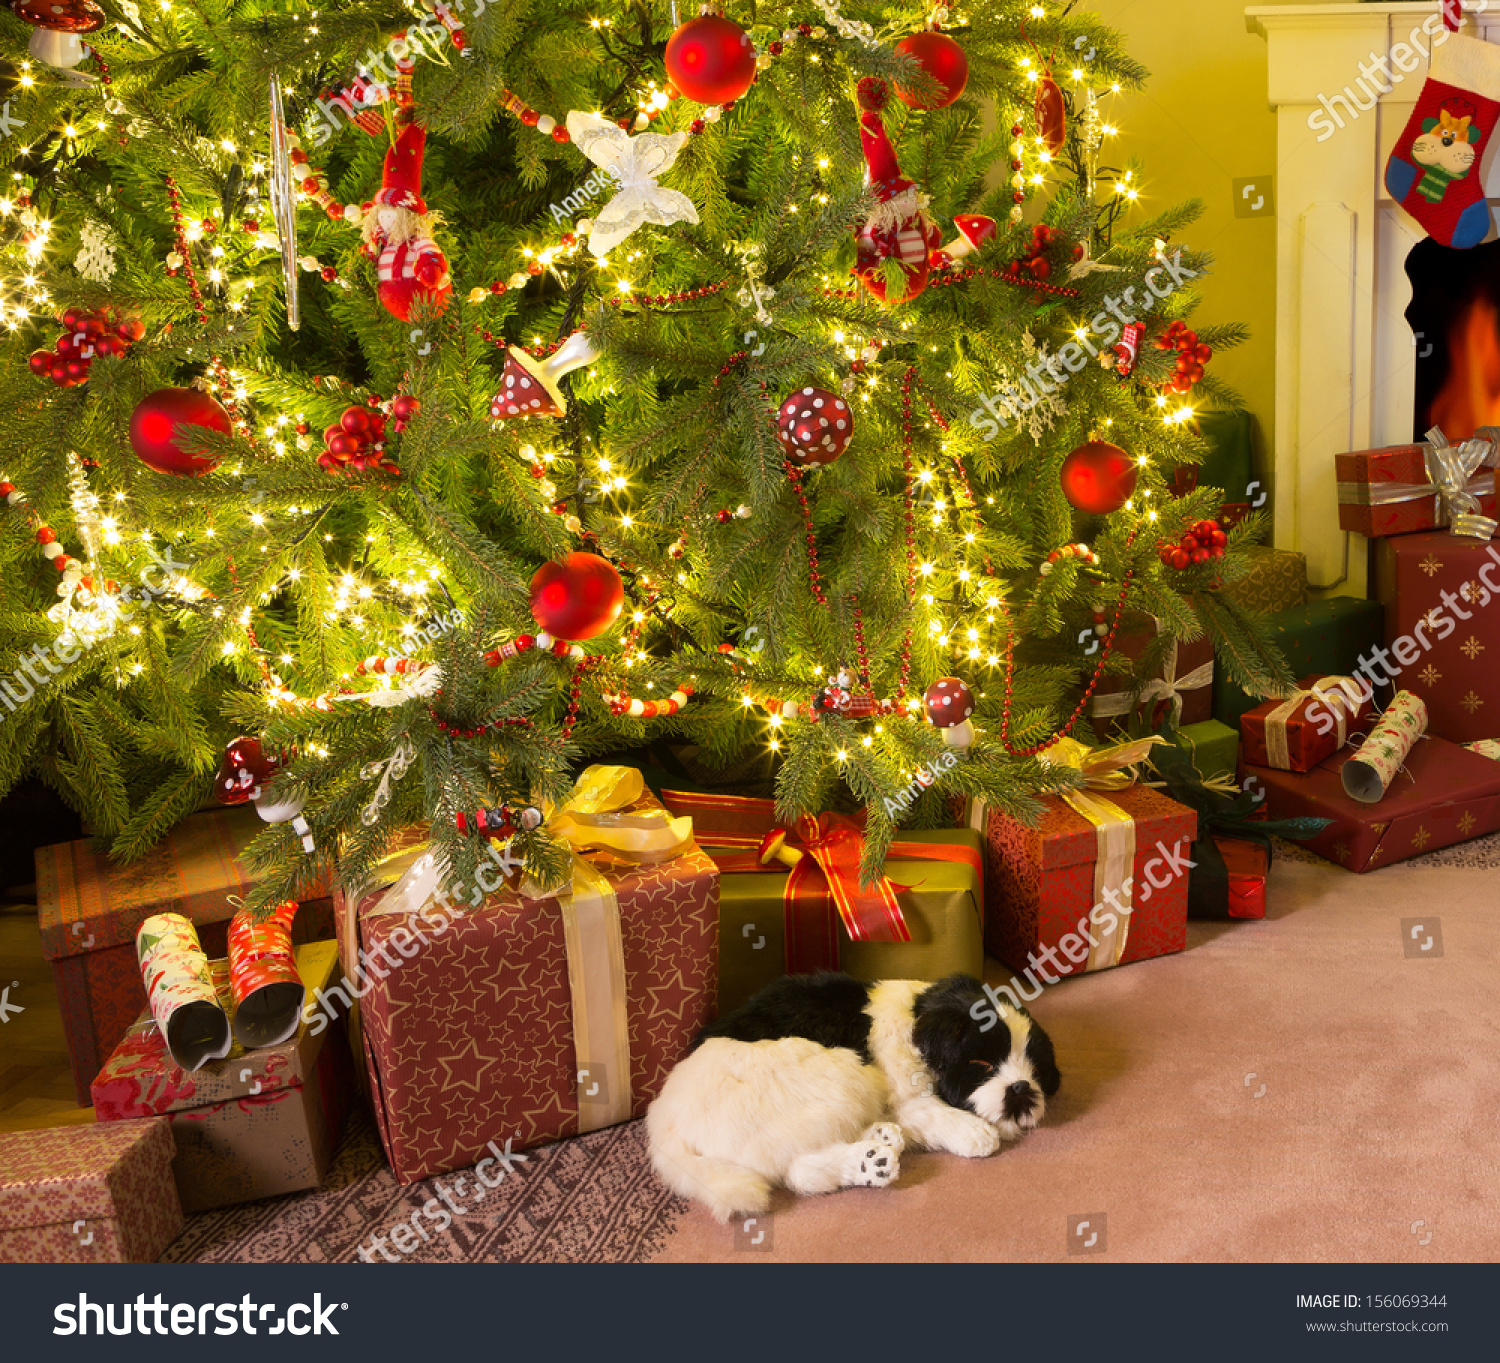 Presents Under The Christmas Tree: Colorful Presents And A Dog Under The Christmas Tree Stock